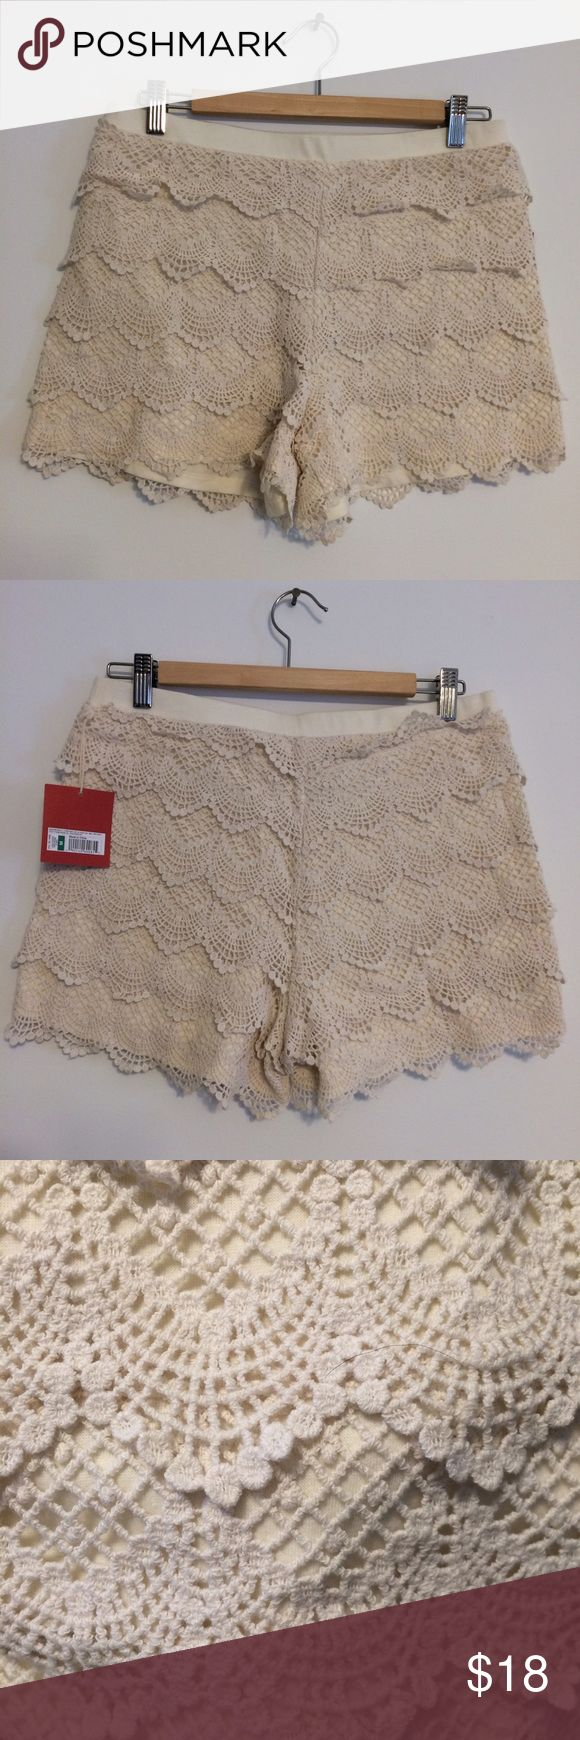 Mossimo ivory lace shorts Layered ivory lace shorts by Mossimo.  Smooth elastic wasteband. Perfect summer short.  Pair with denim top for the perfect day date outfit Mossimo Supply Co Shorts